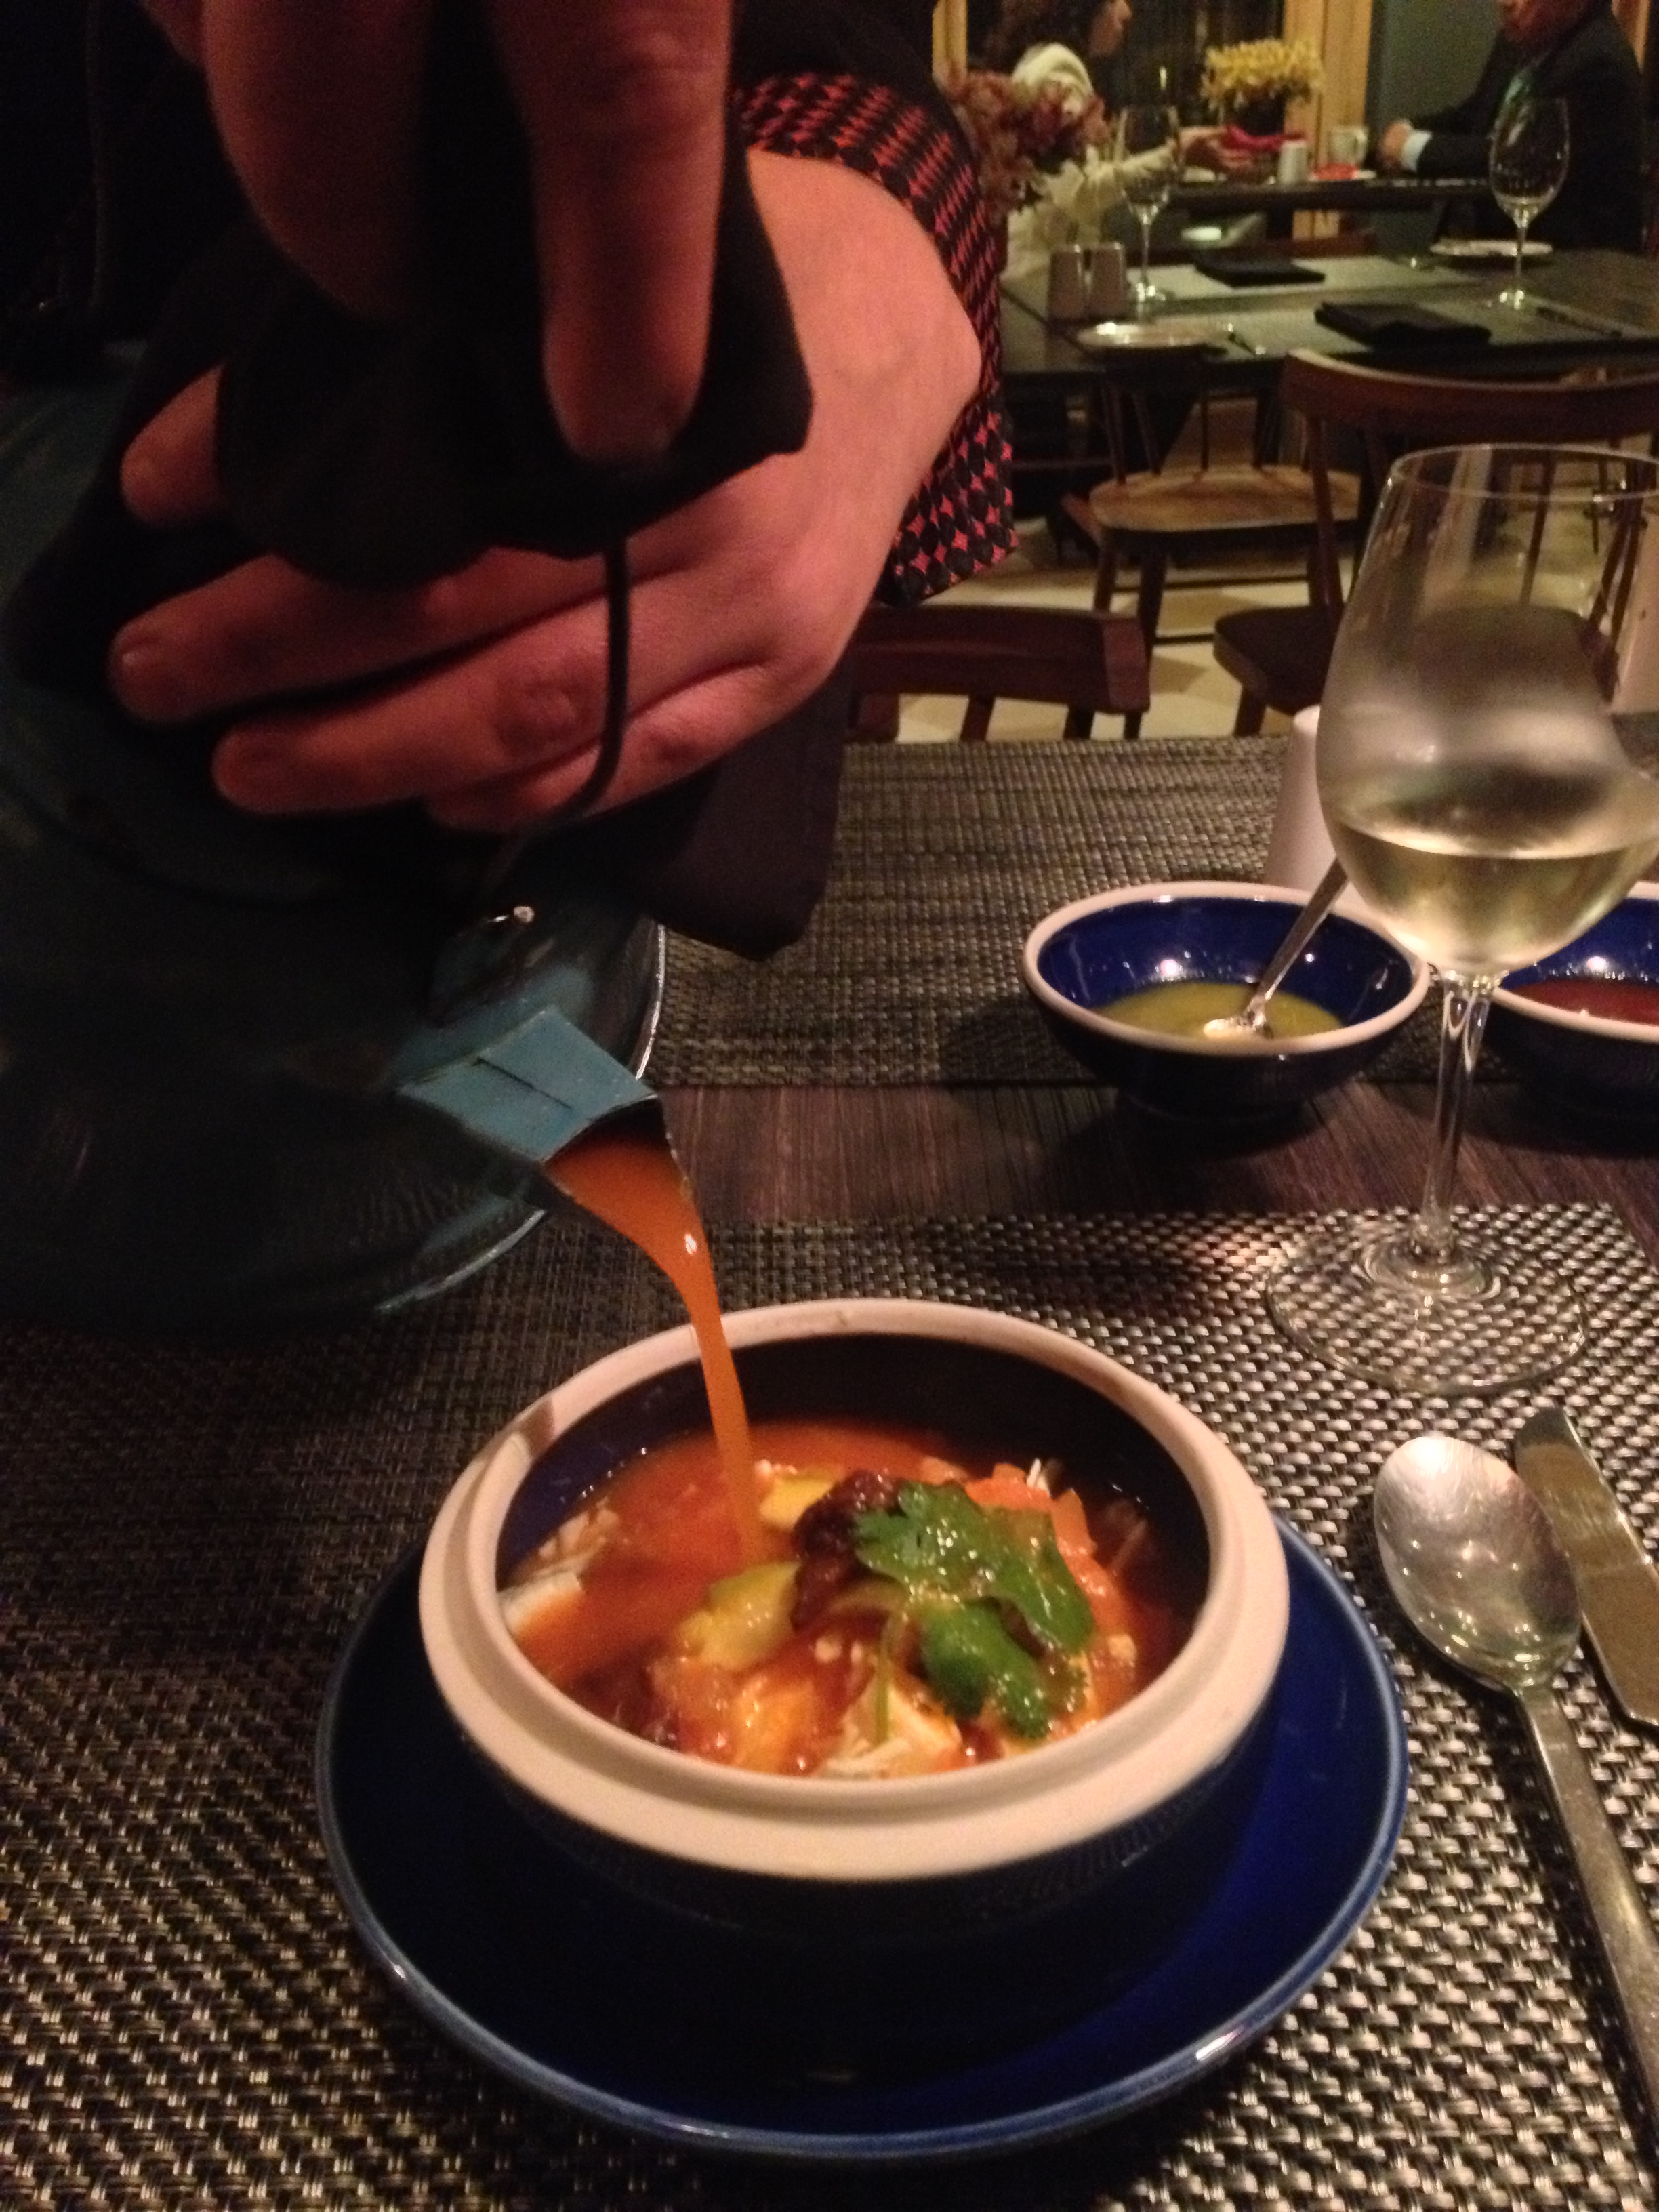 Guest Food Blogger Nettie Z tells all about the Chicken Tortilla Soup - Hotel Bo Style!